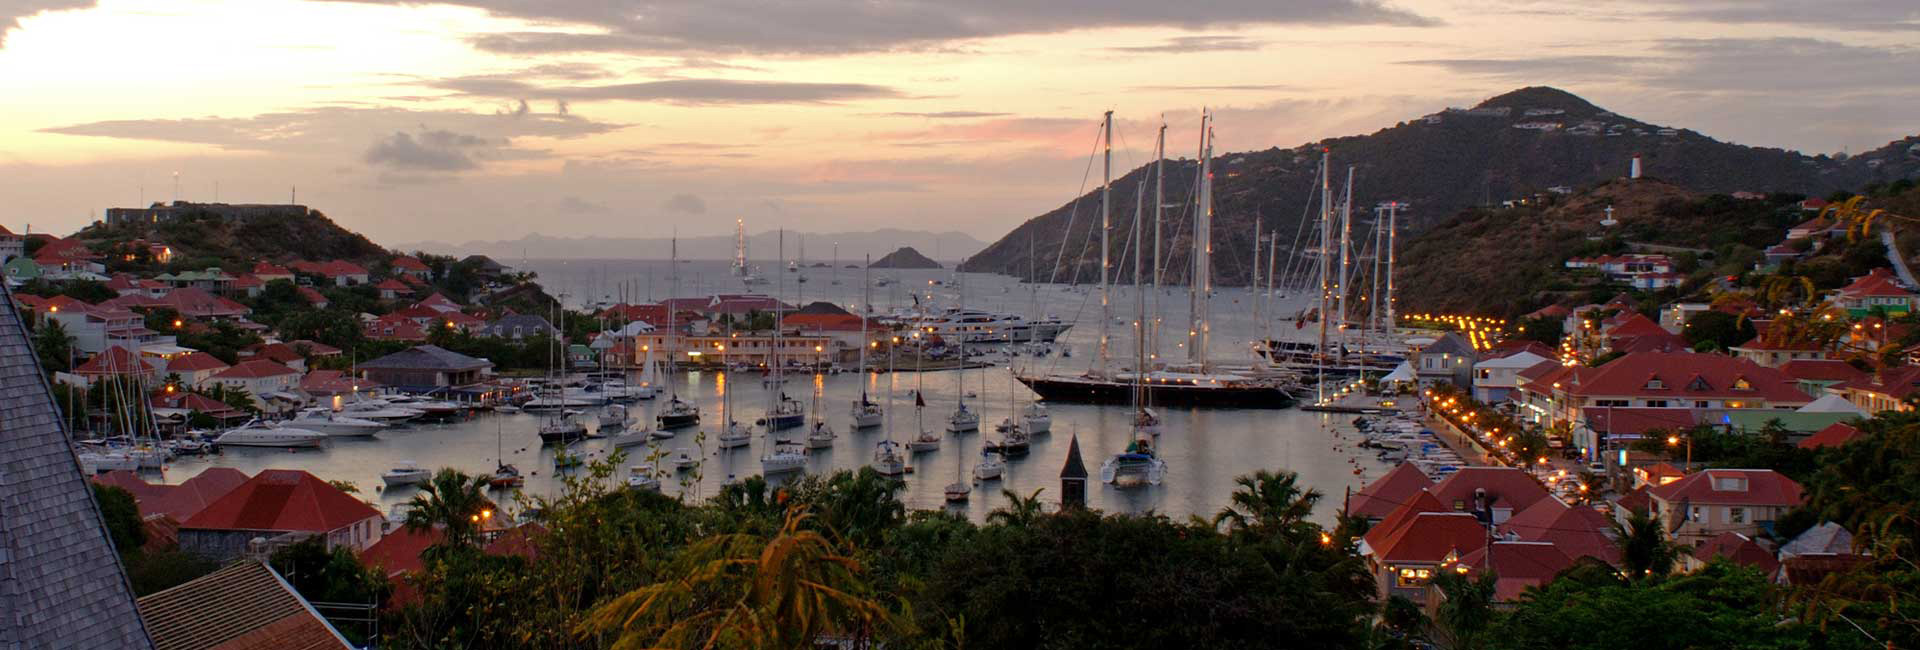 The port of Saint-Barthelemy